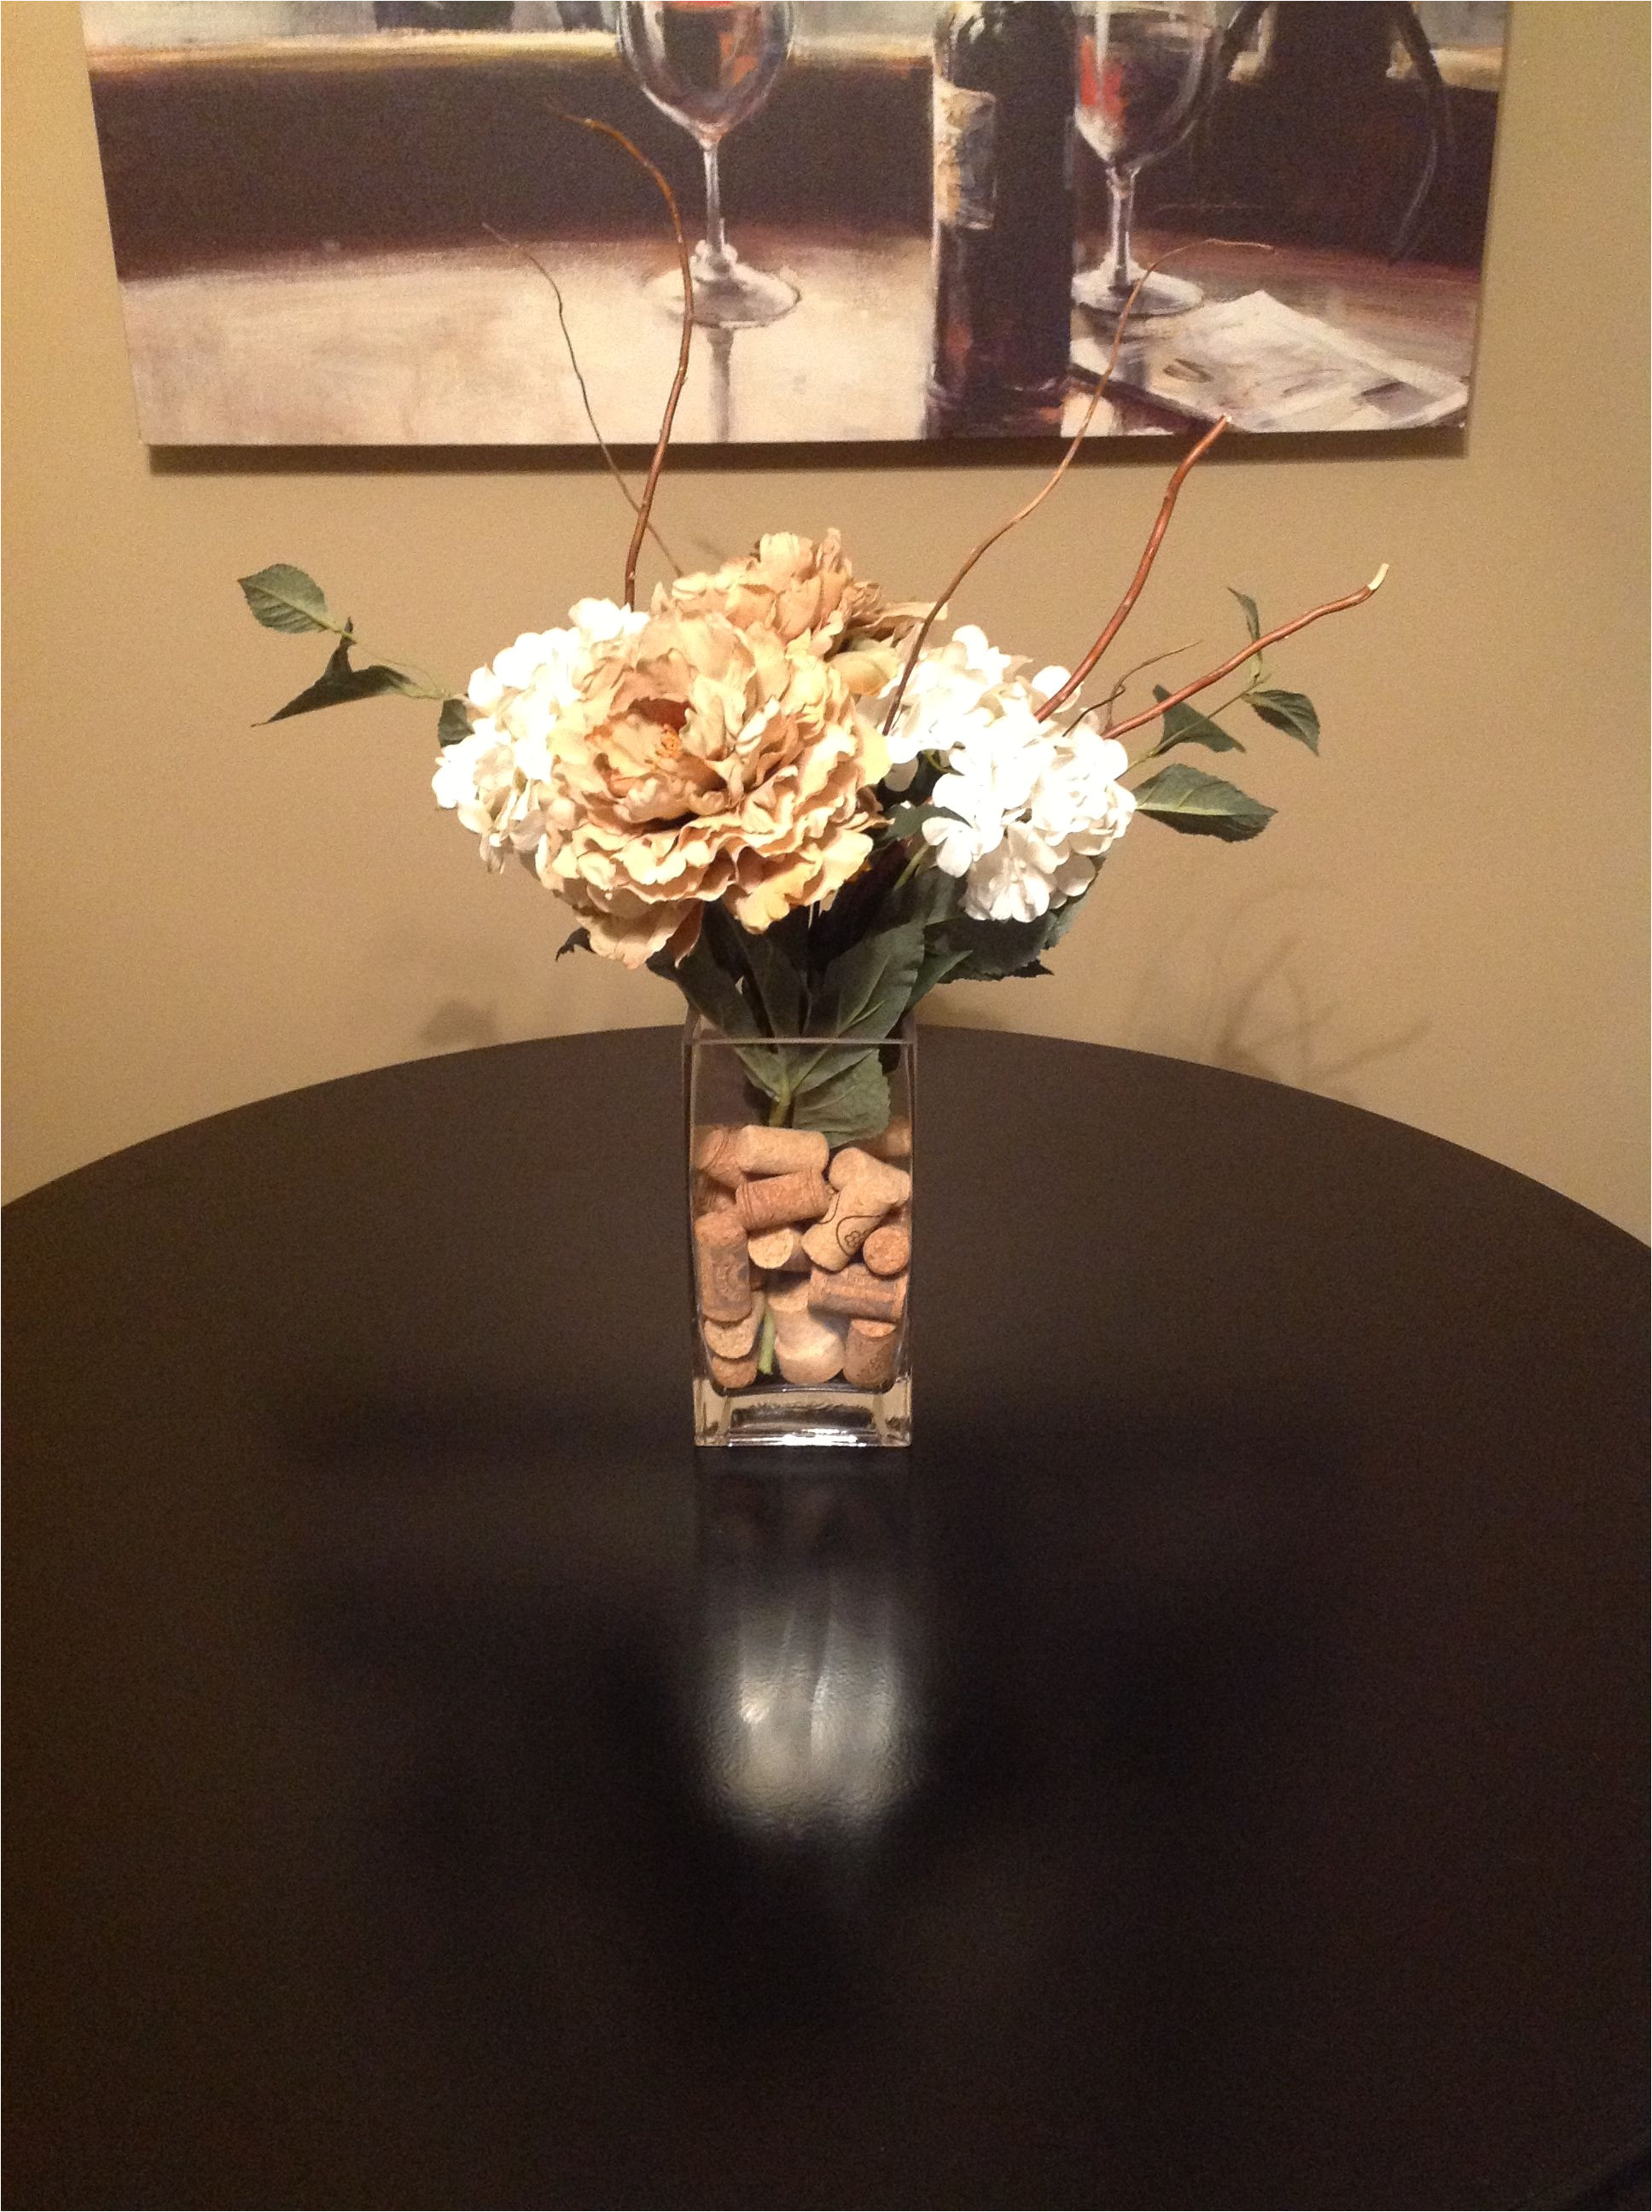 bought vase flowers and sticks from hobby lobby cut flowers to fit vase rubber band and bundle together at bottom and fill with wine corks from target